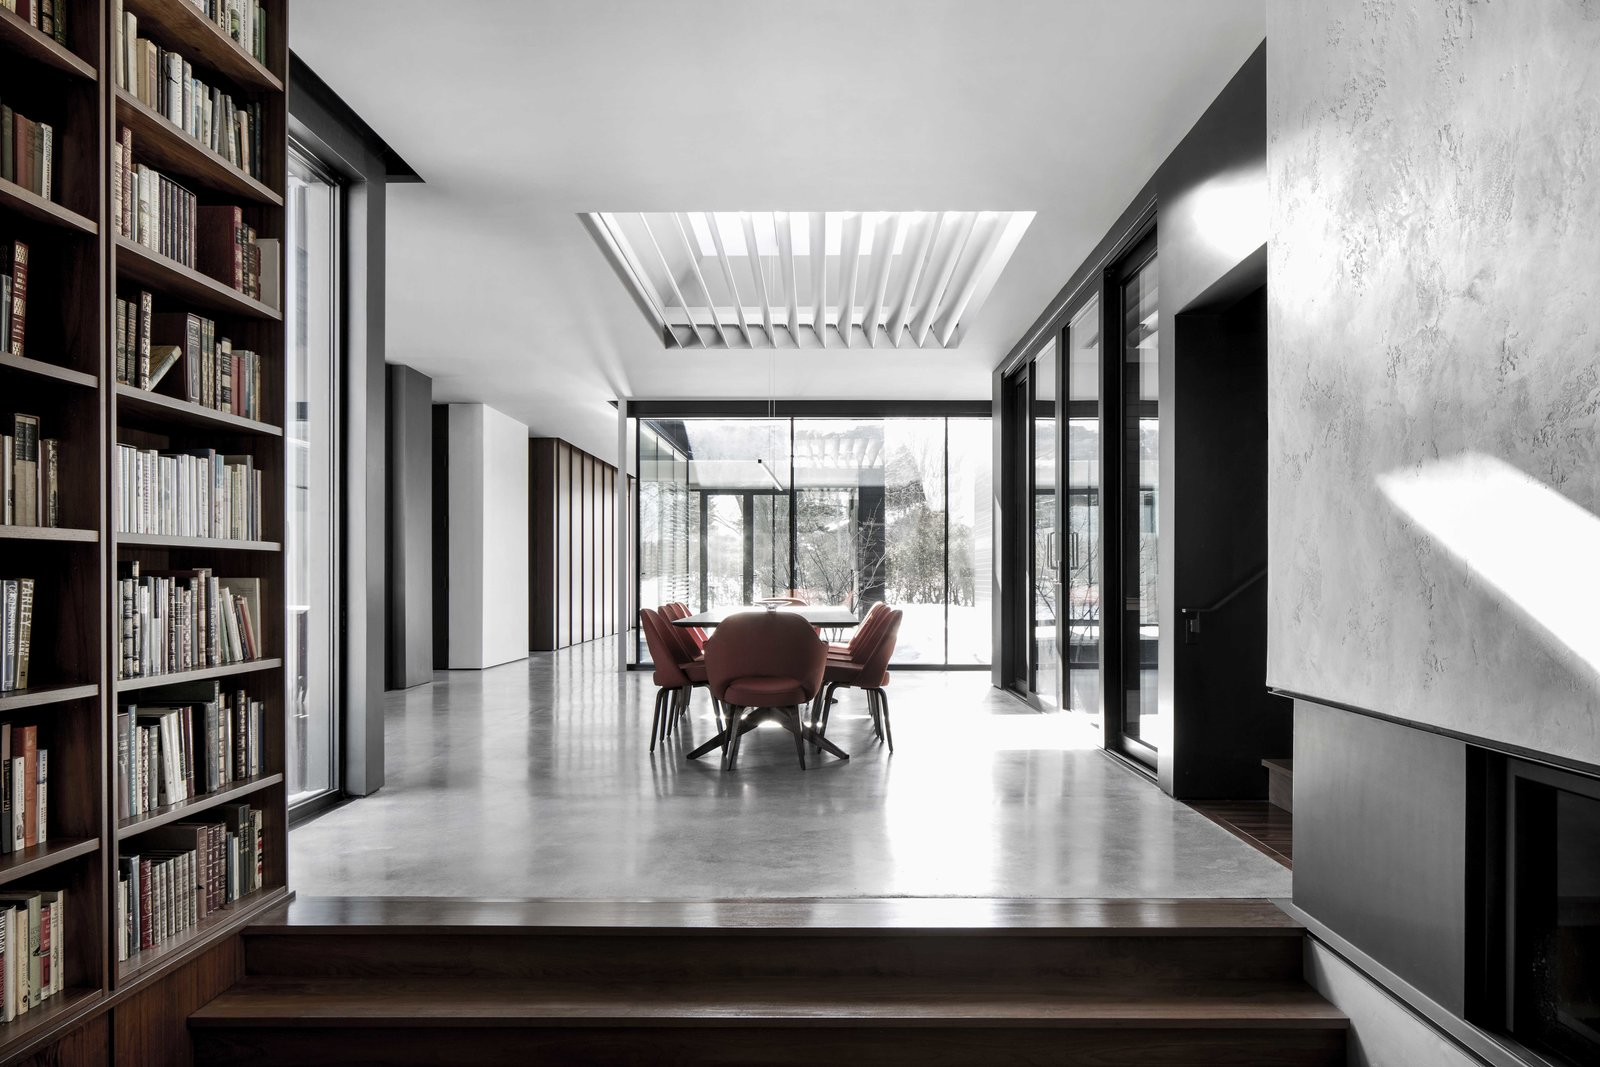 Dining Room, Concrete Floor, Corner Fireplace, Chair, and Table  True North by Alain Carle Architecte